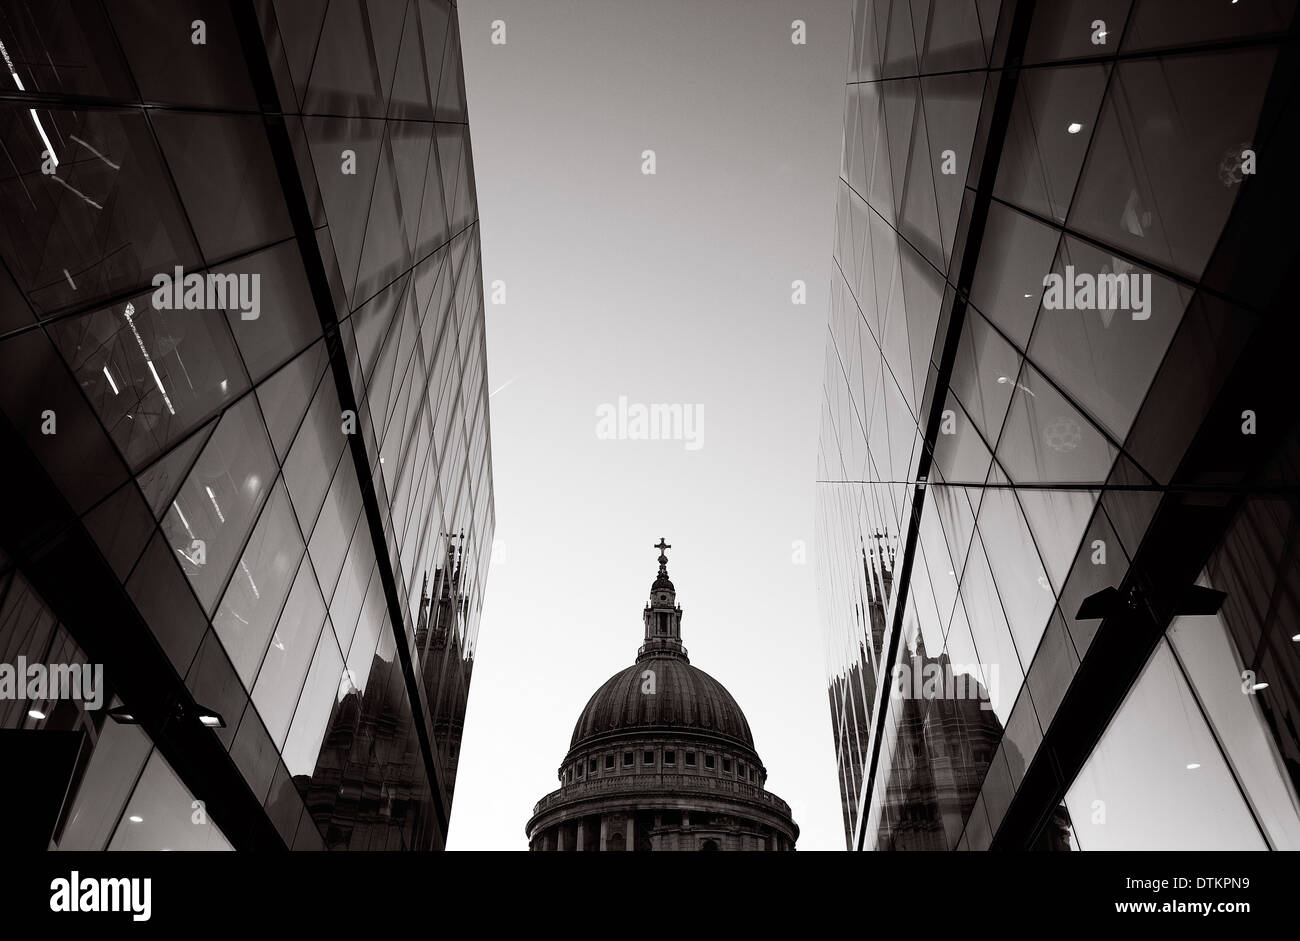 The view of St Paul's Cathedral from modern building one new change shopping mall in London - Stock Image